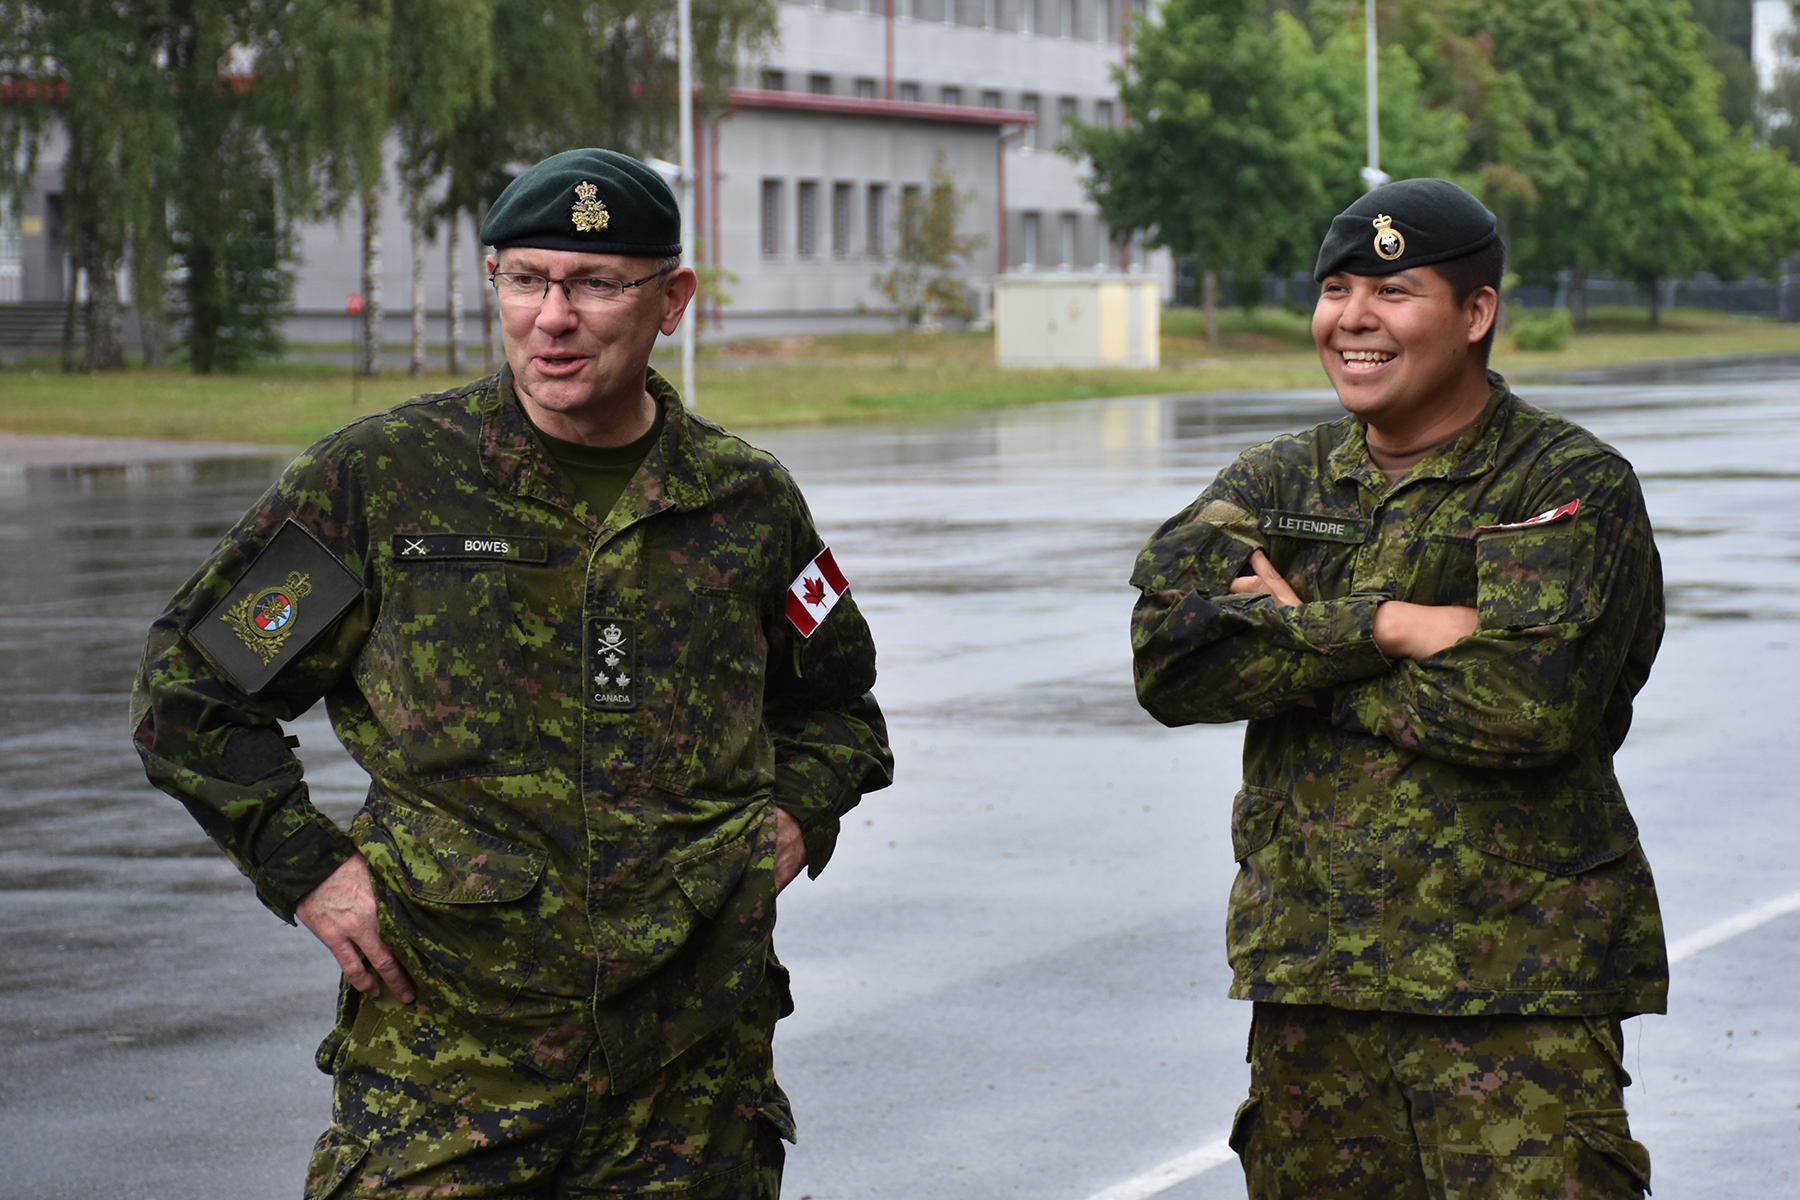 LGen Stephen Bowes, commanding officer of Canadian Joint Operations Command, visited the CAF members deployed as part of Operation REASSURANCE's enhanced Forward Presence Battle Group (eFP BG)Latvia in August 2017. (mcpl gerald cormier, efp bg latvia public affairs)